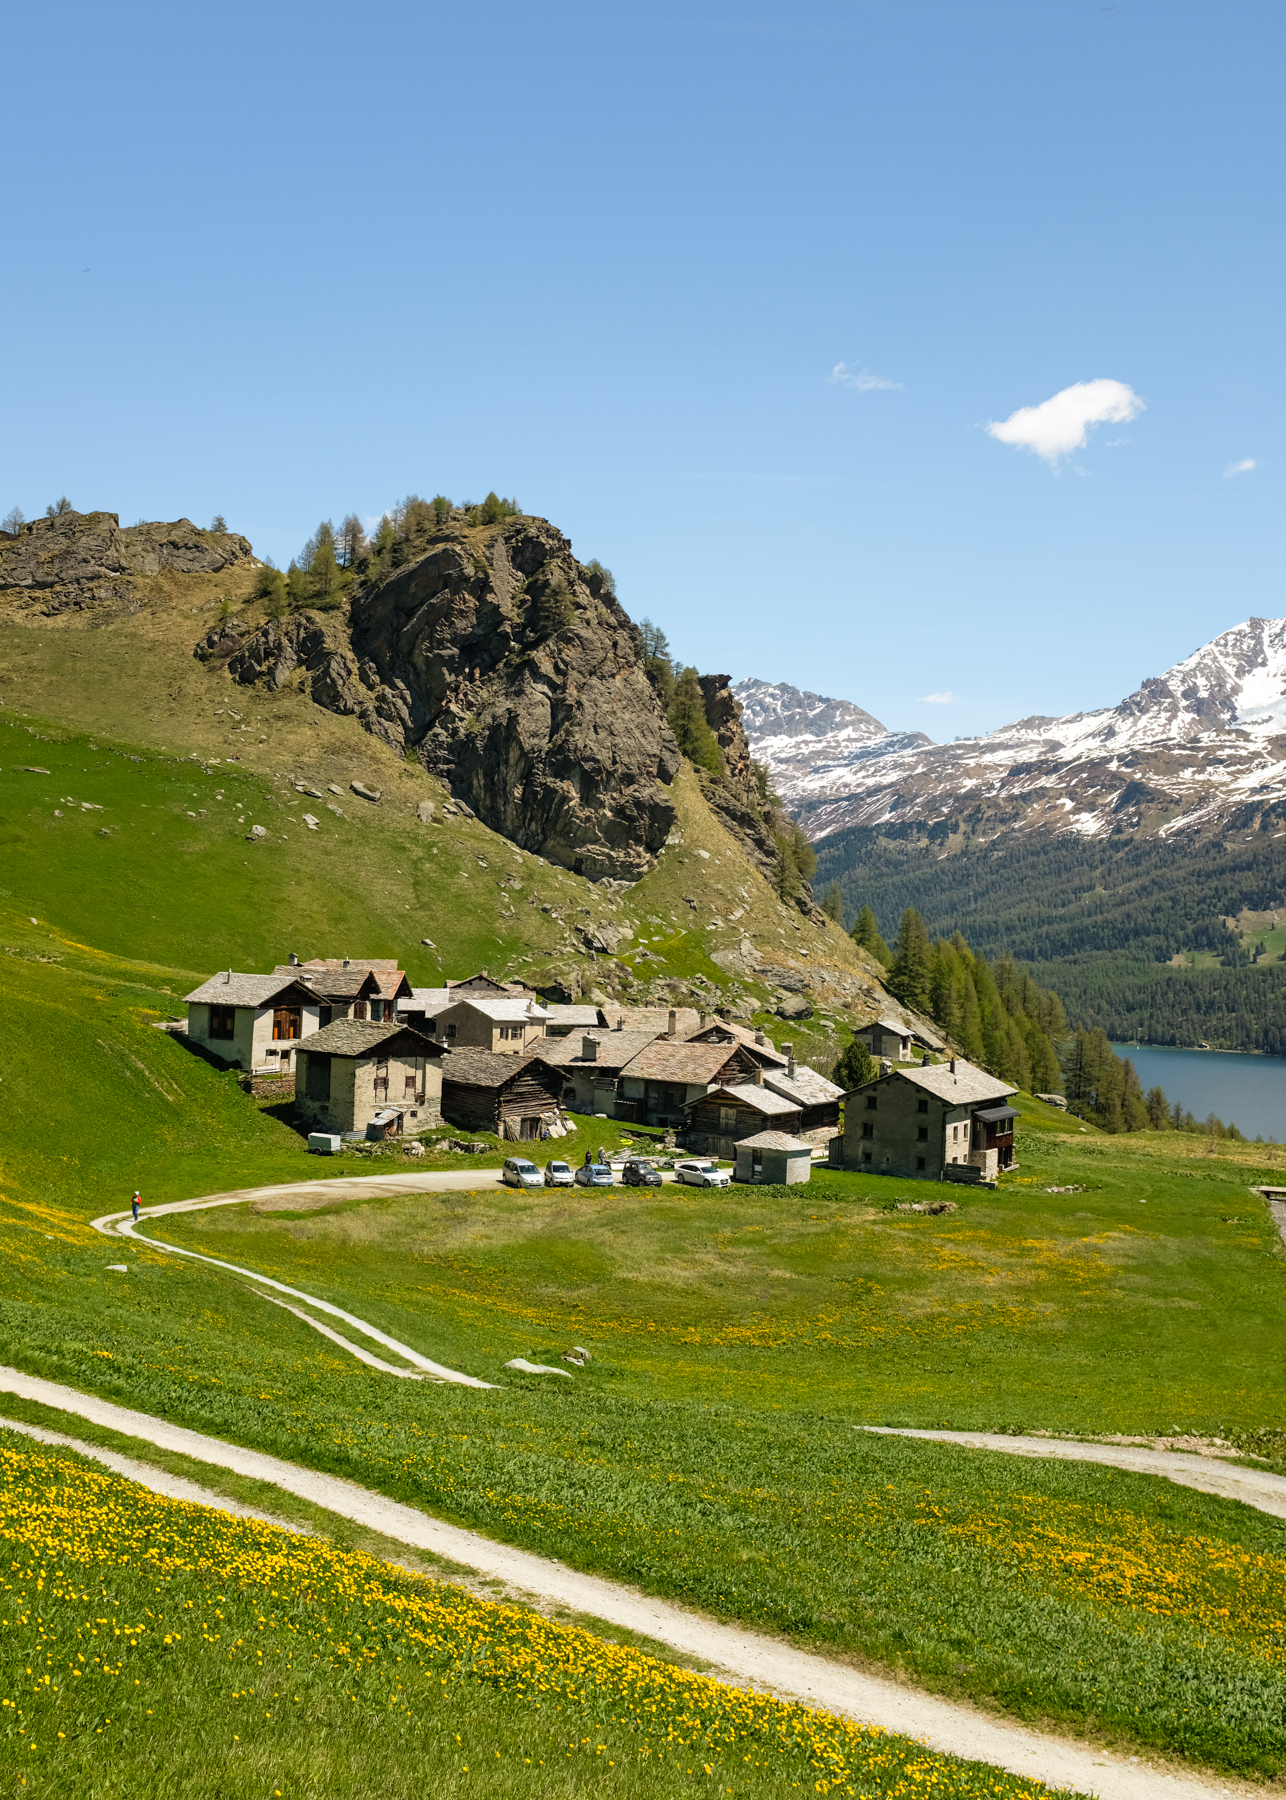 A hiking path leading to a small mountain village in an alpine pasture